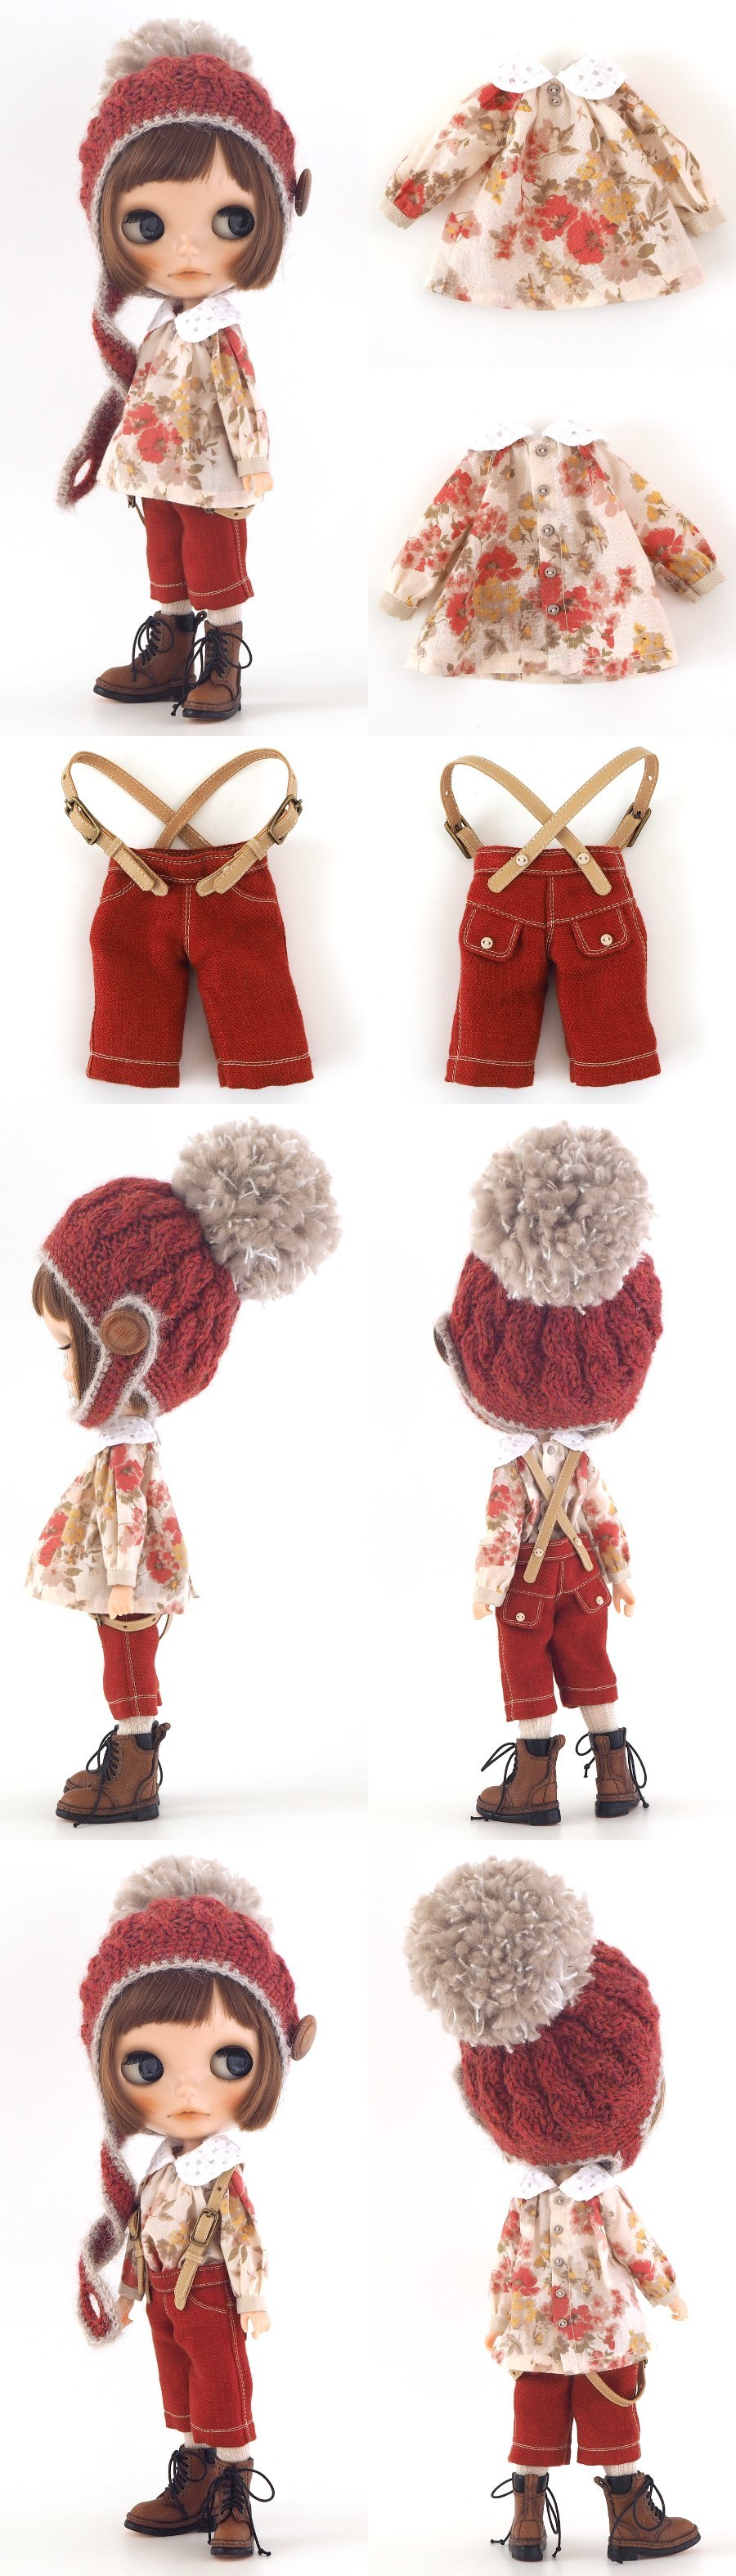 ** Blythe outfit ** Lucalily 555**_d0217189_20422986.jpg